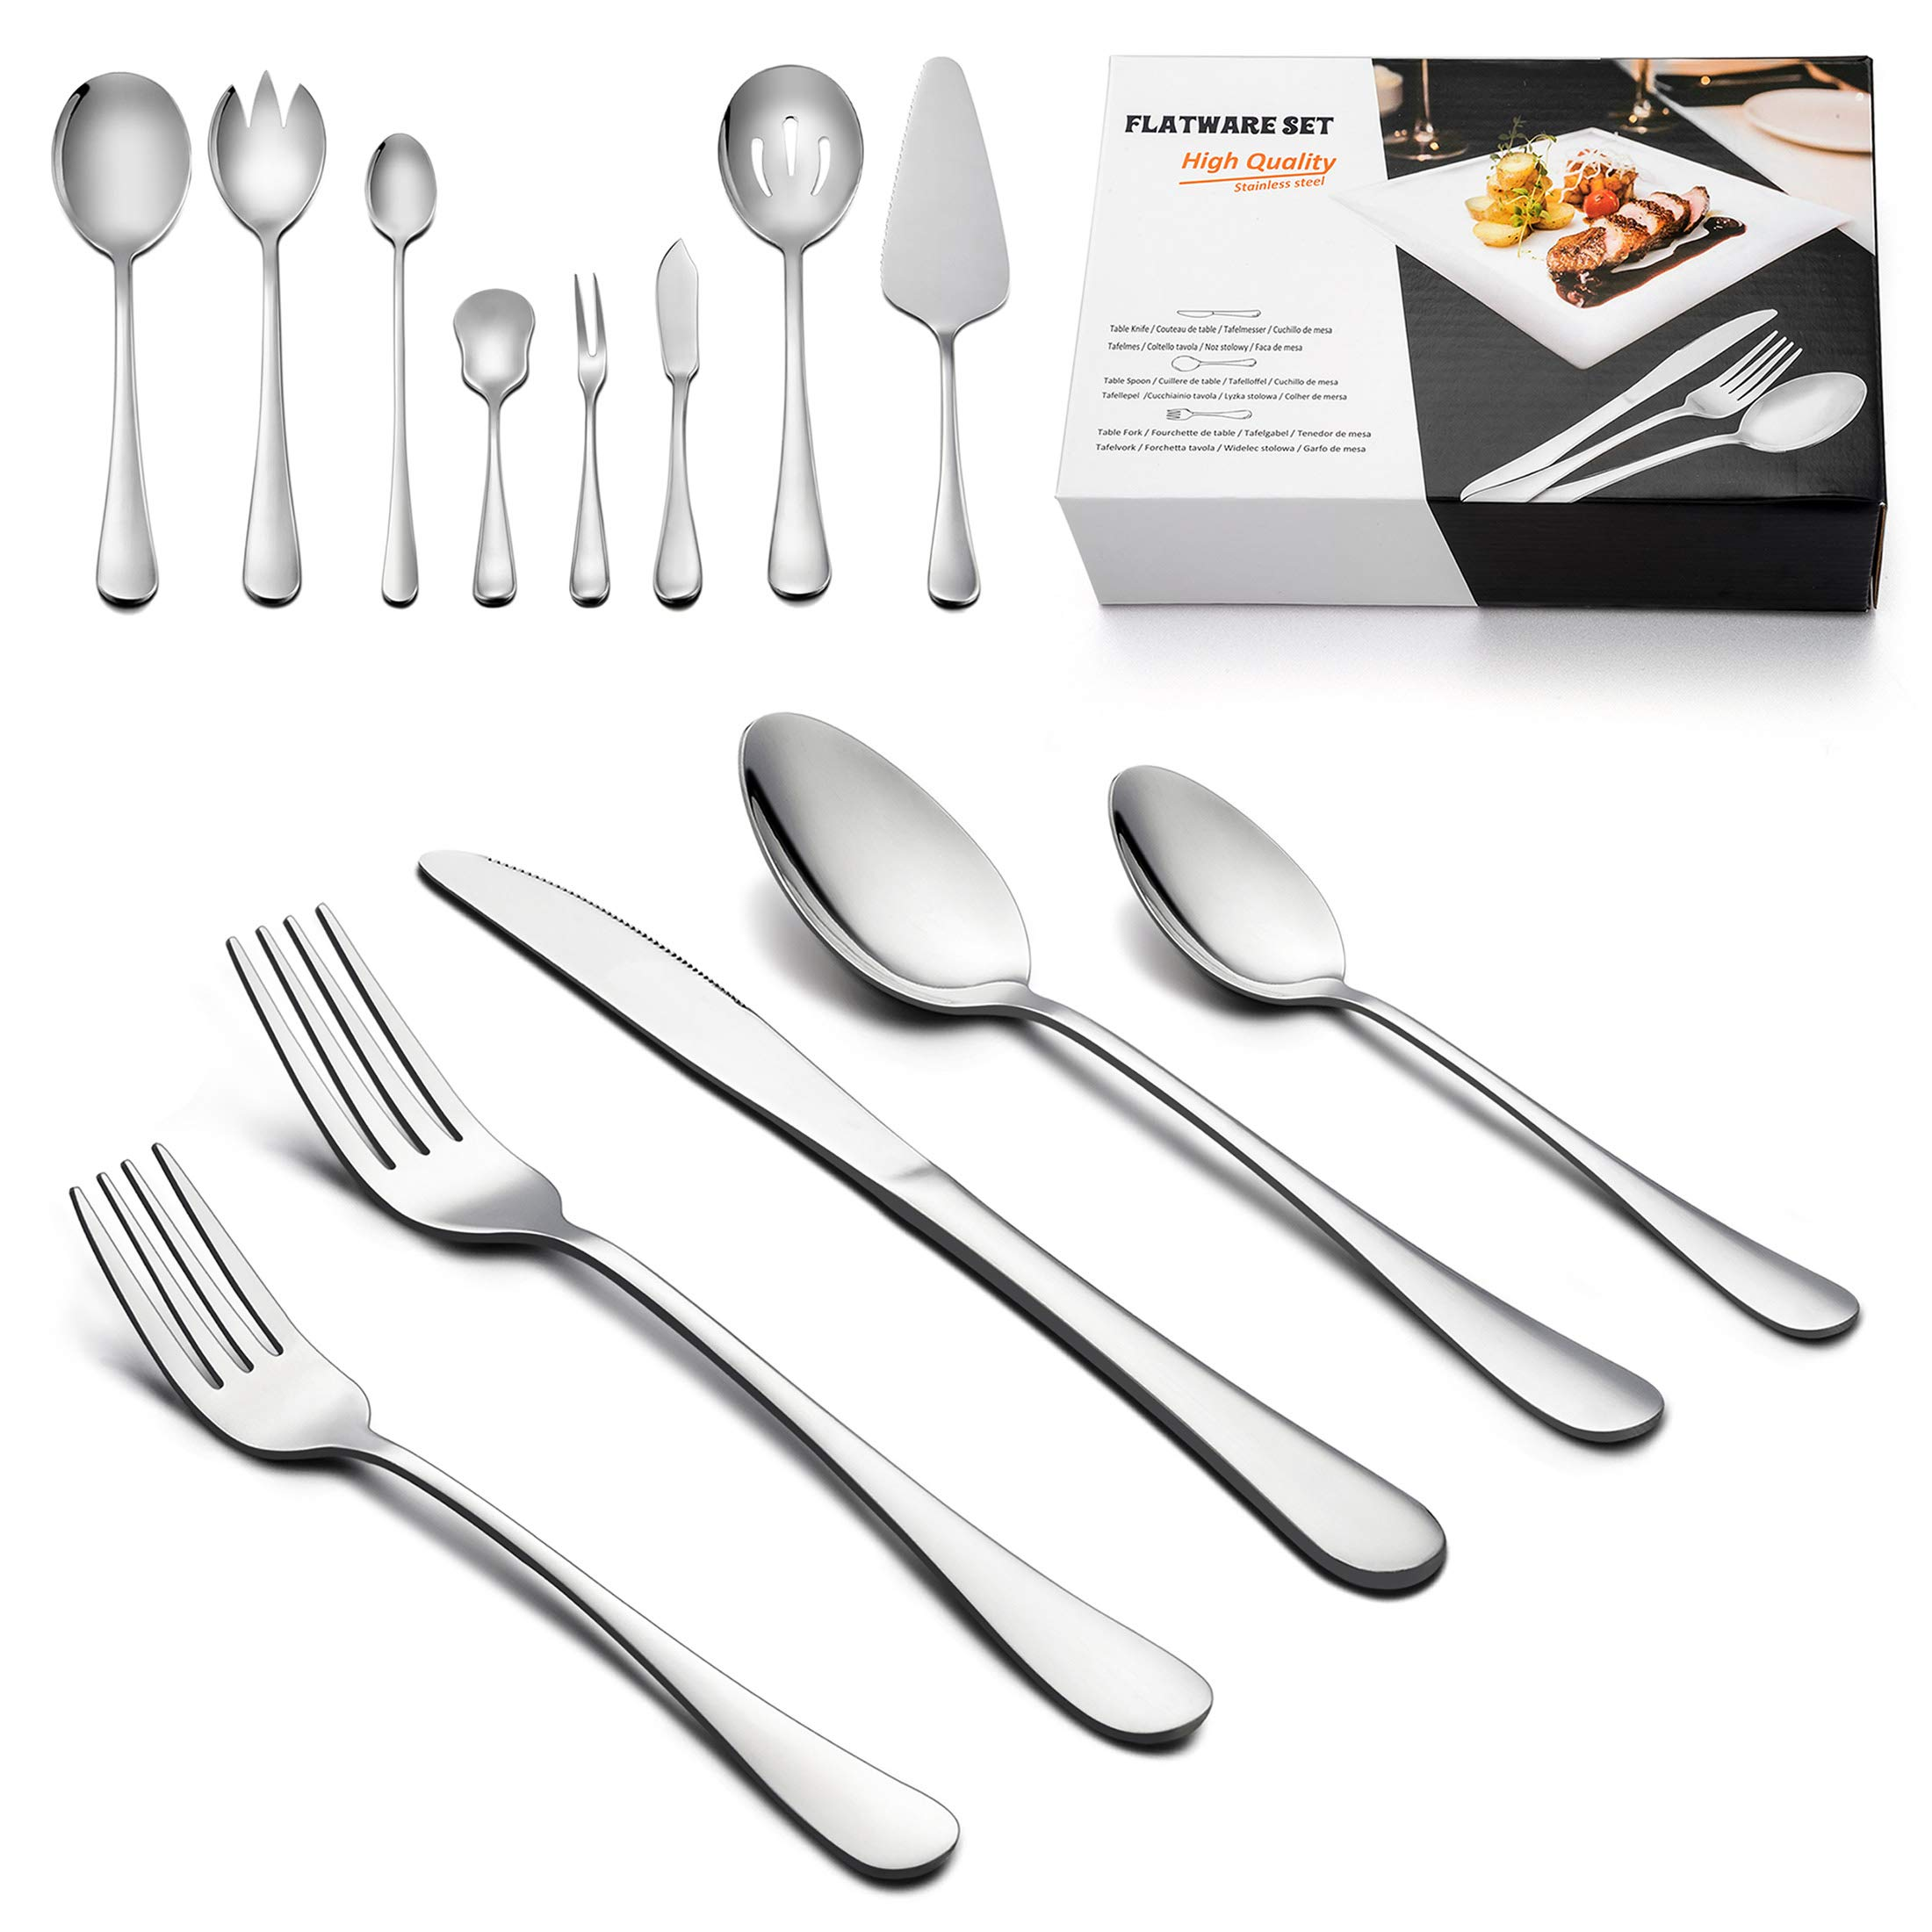 Silverware Set with Serving Pieces, LIANYU 48-Piece Flatware Set Service for 8, Stainless Steel Cutlery Eating Utensils, Mirror Finish, Dishwasher Safe by LIANYU (Image #1)